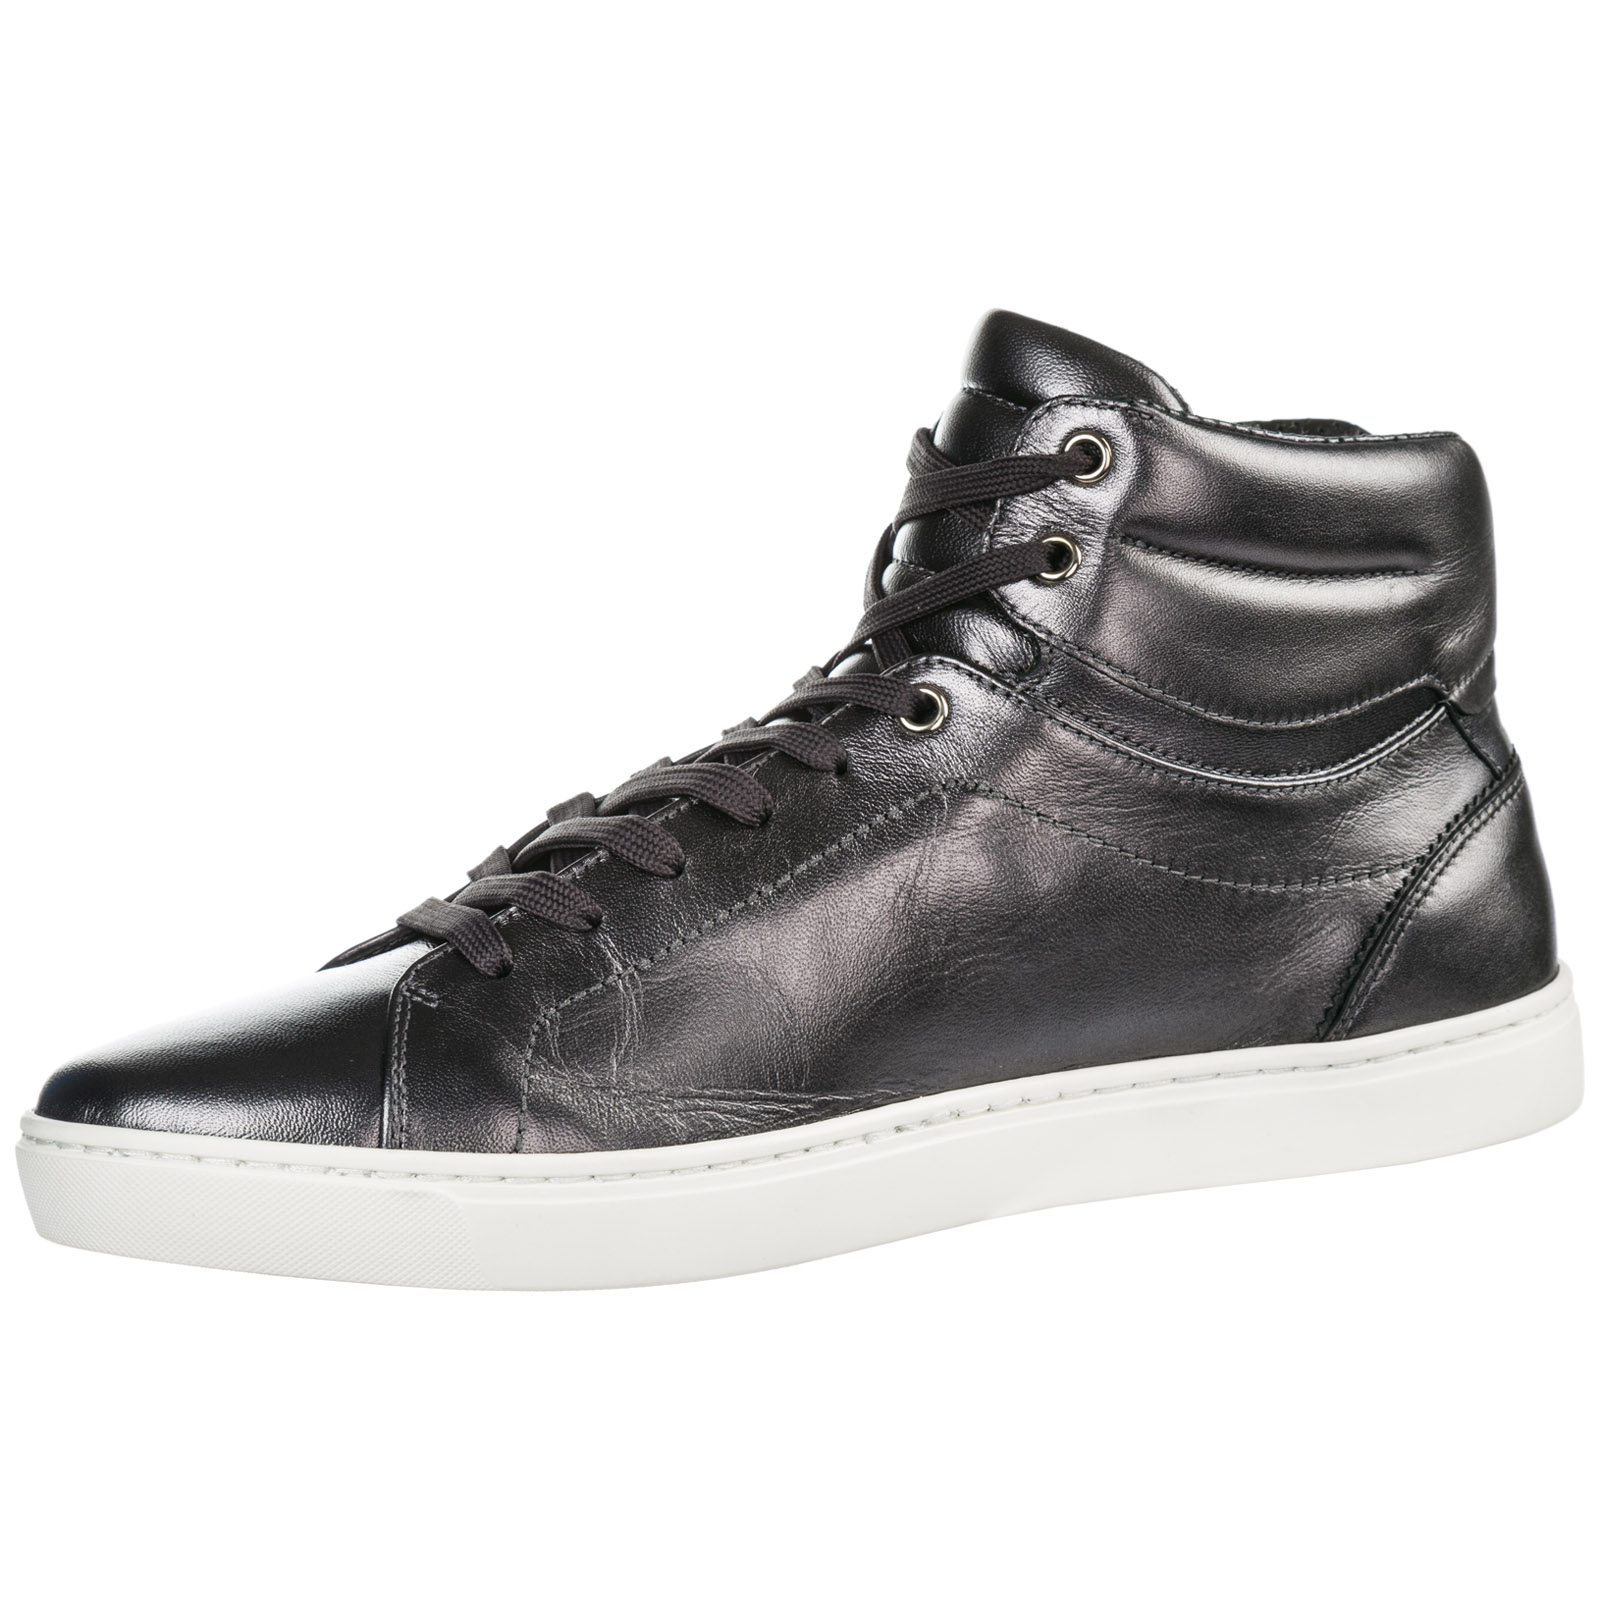 Men's shoes high top leather trainers sneakers mordorè